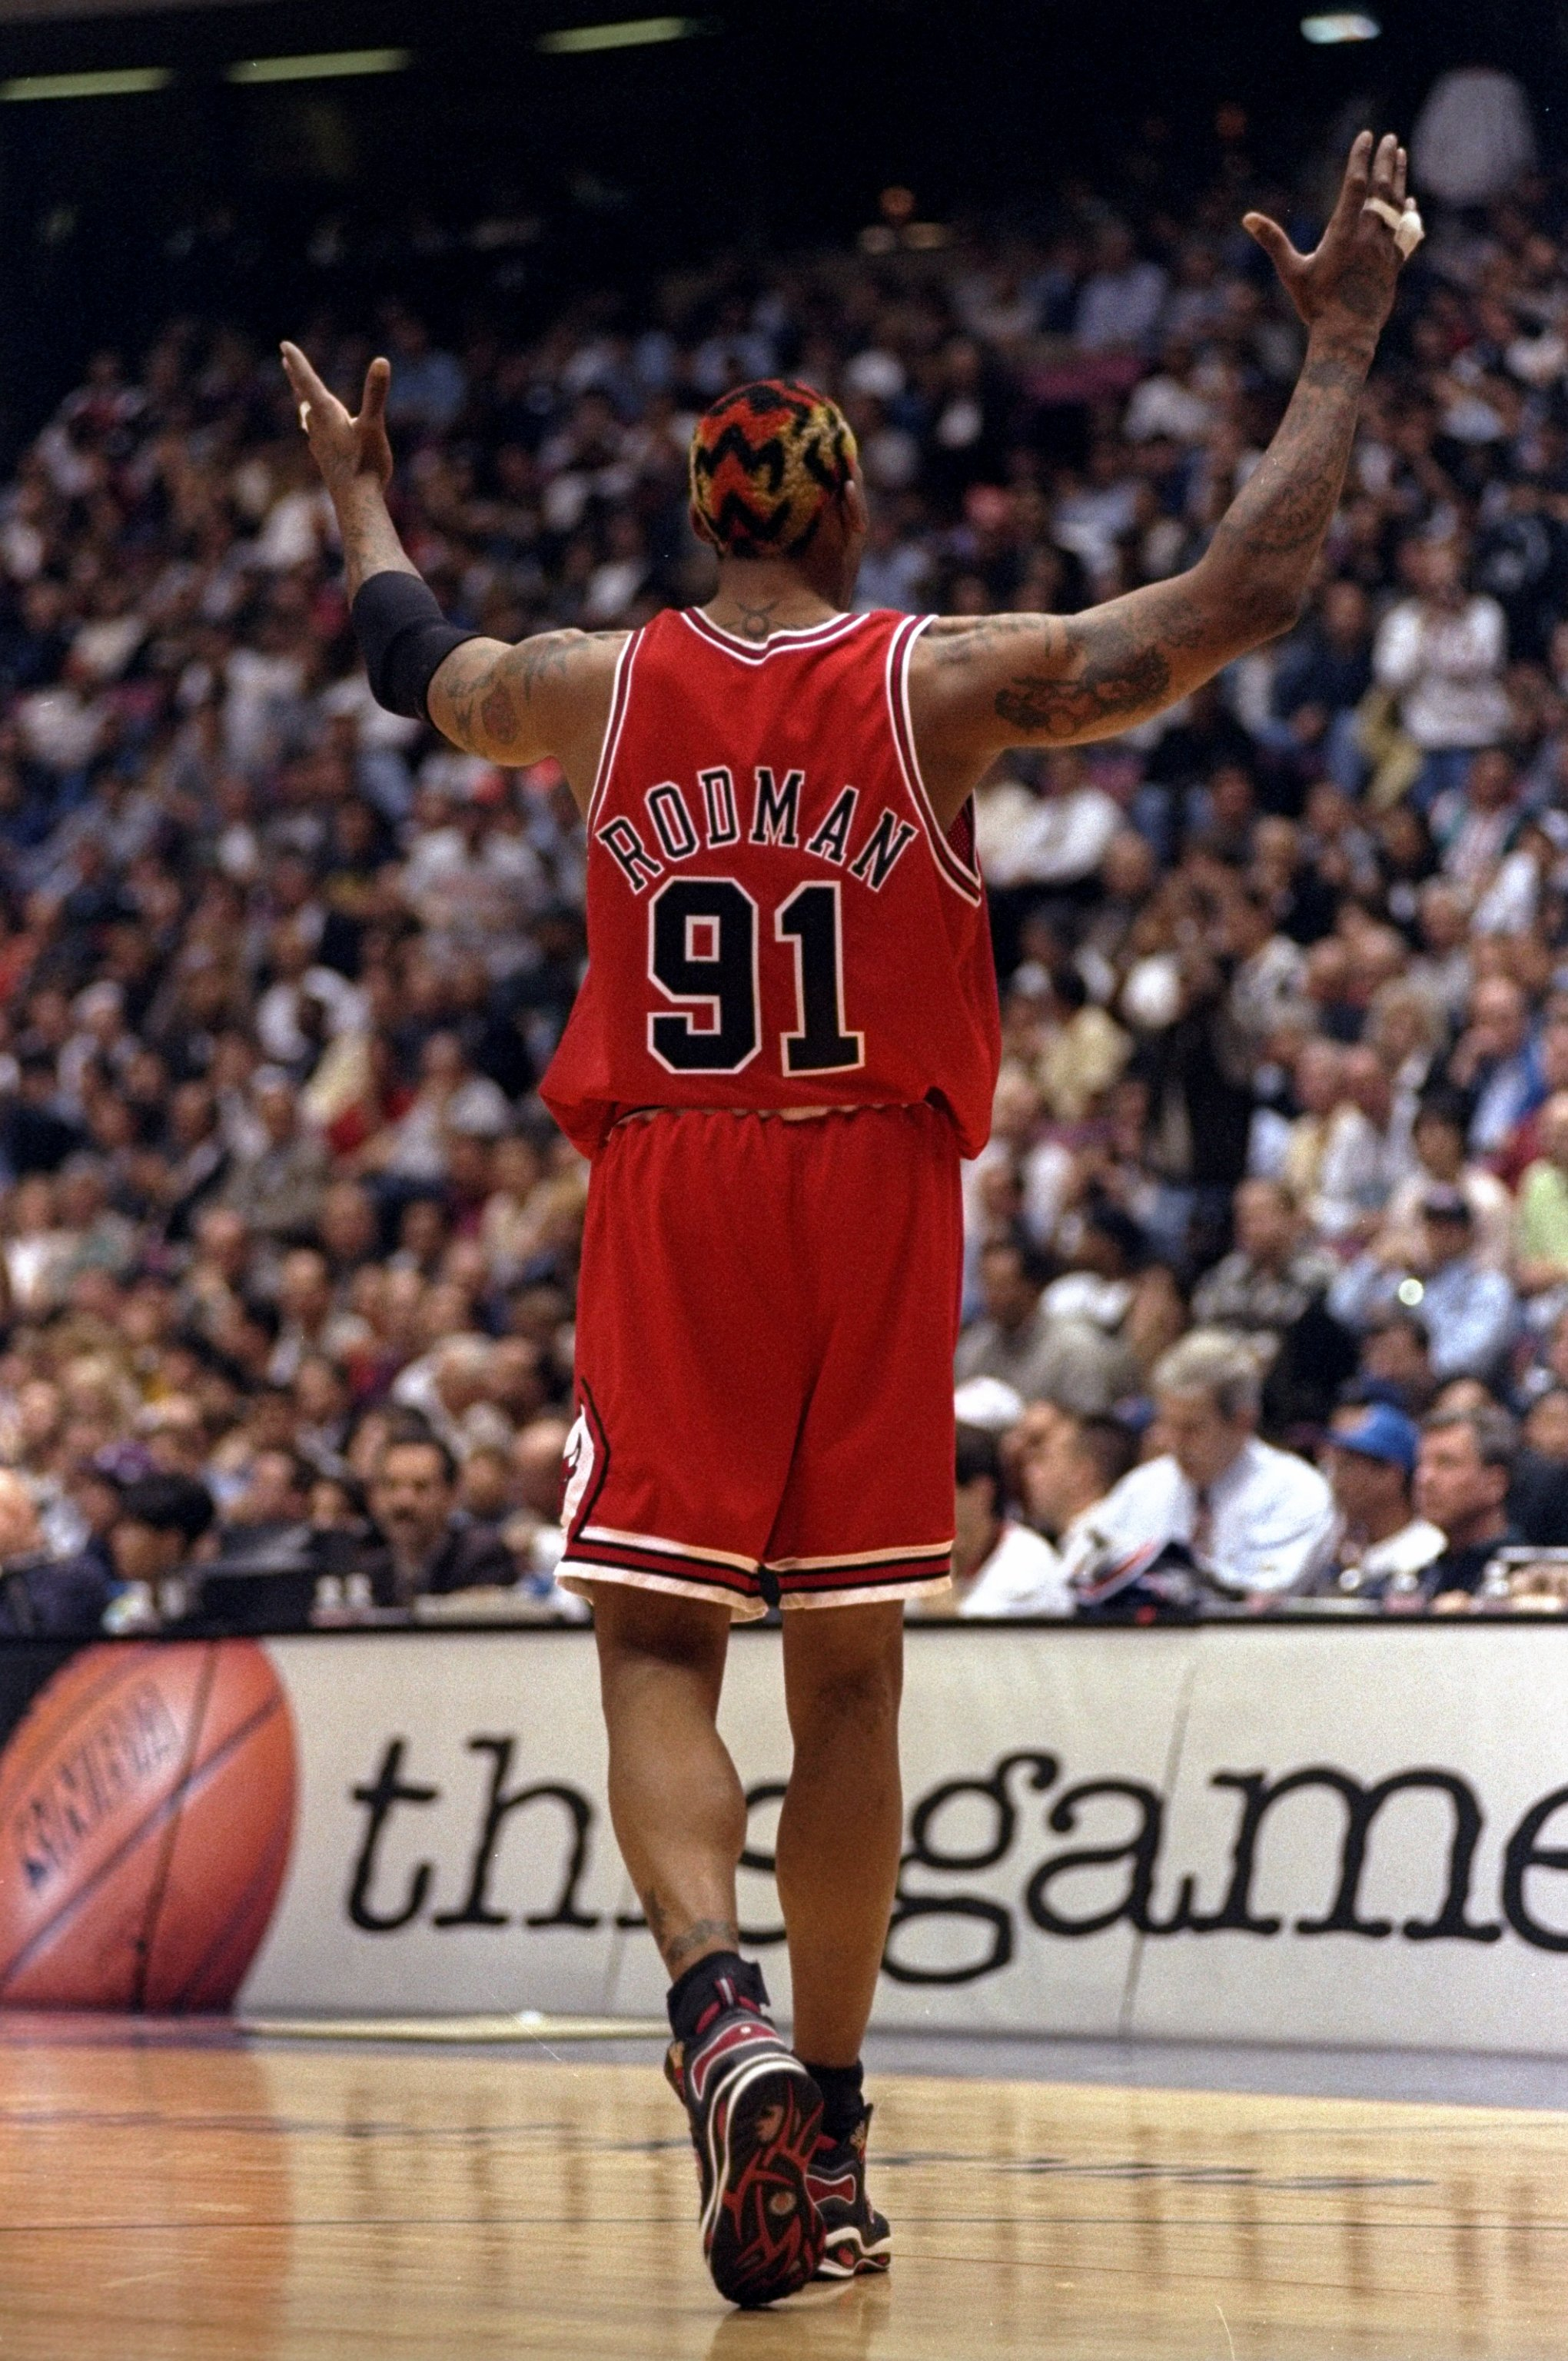 29 Apr 1998:  Dennis Rodman #91 of the Chicago Bulls gestures during a First Round Playoff Game against the New Jersey Nets at the Continental Airlines Arena in East Rutherford, New Jersey. The Bulls defeated the Nets 116-101.